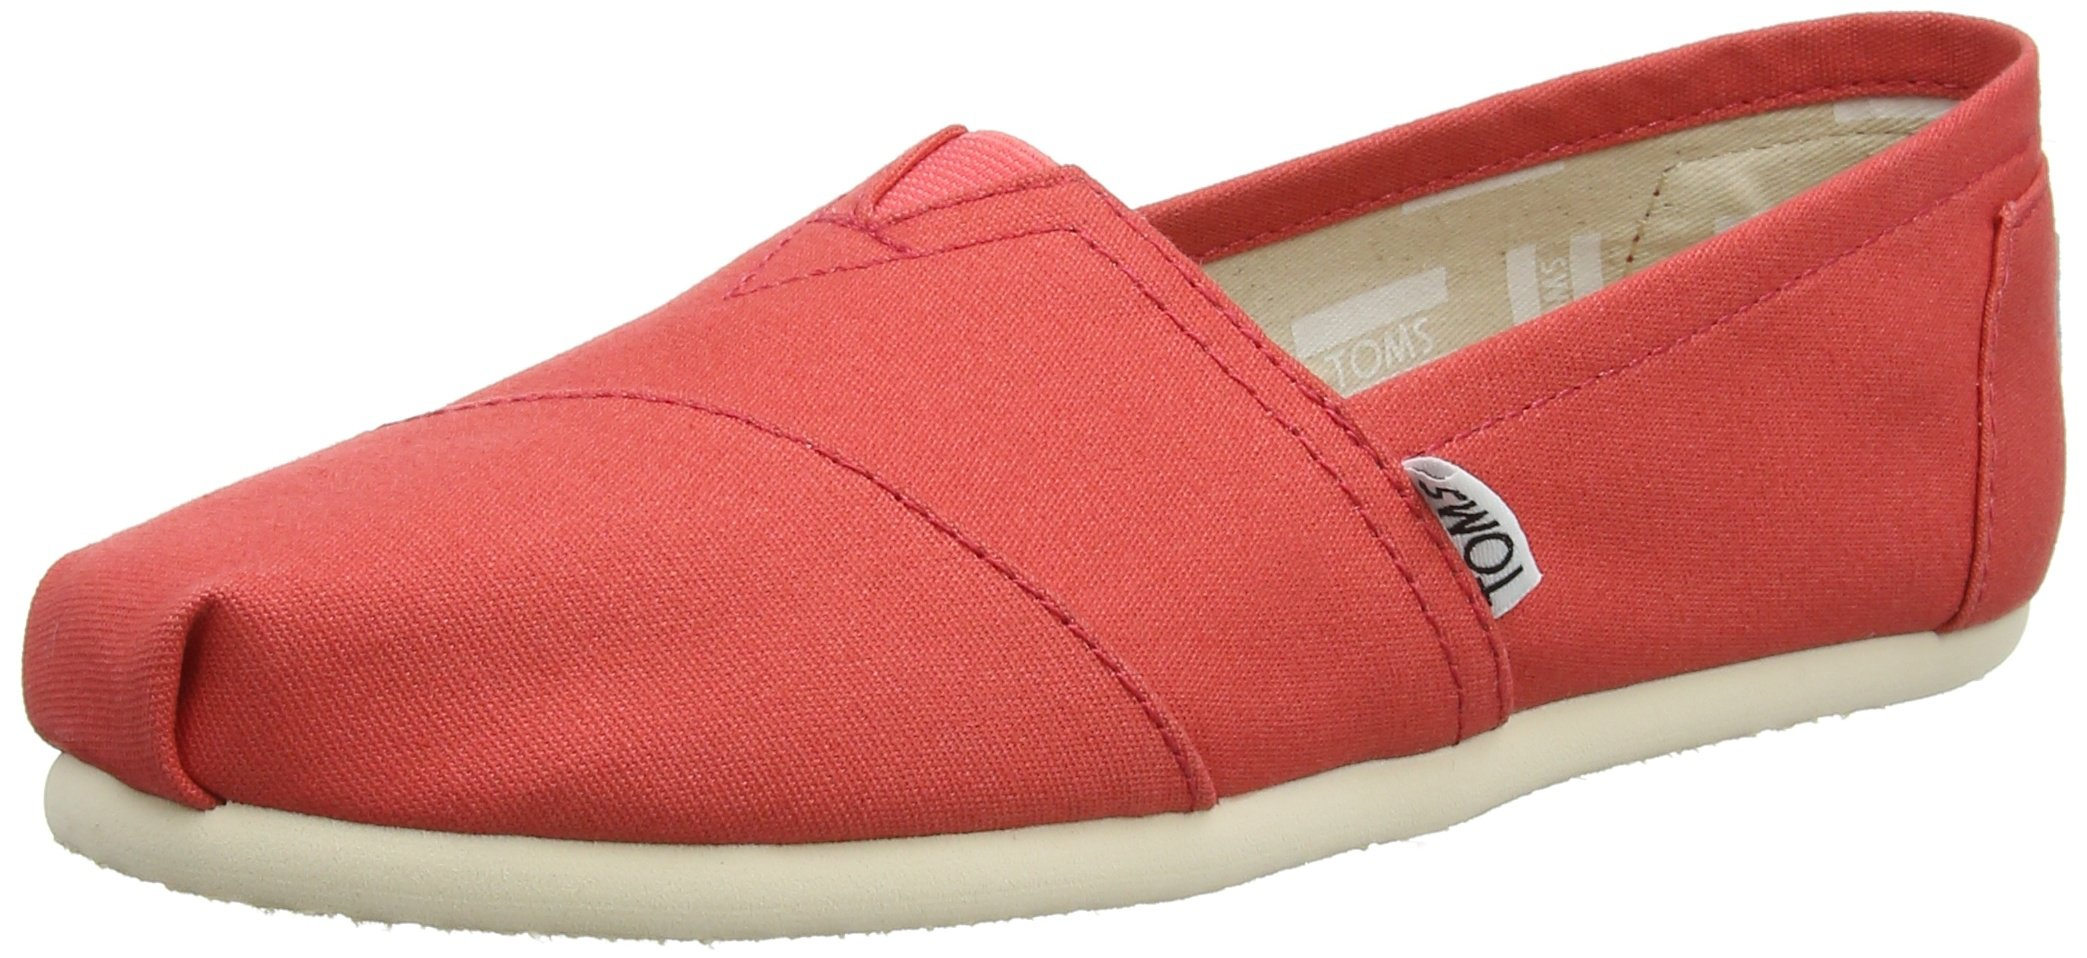 TOMS Women's Canvas Alpargata ESP Espadrilles, Red (Coral), 7.5 UK 41 EU